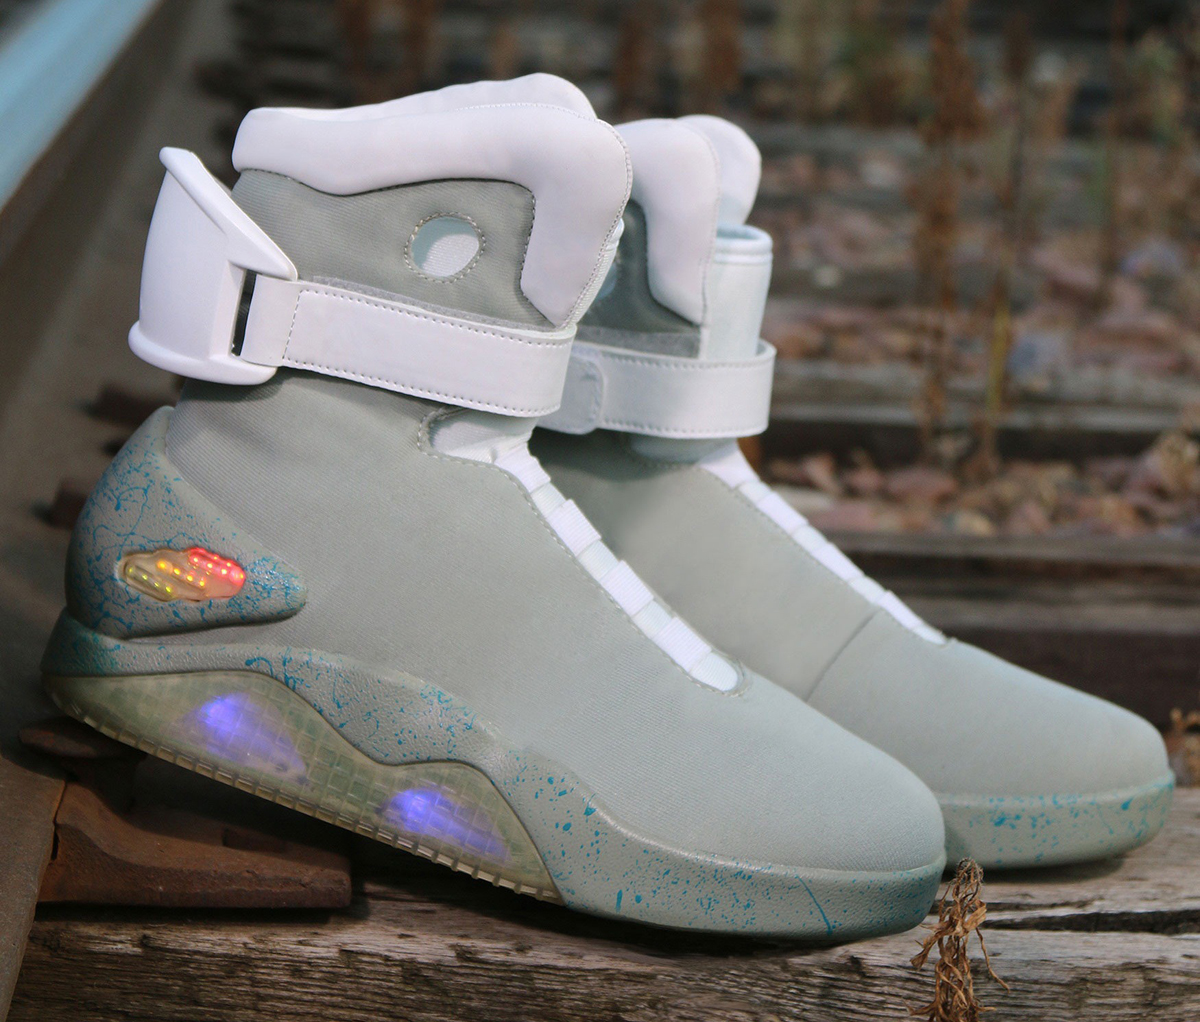 The Nike MAG Halloween Costume Sneaker Is Back